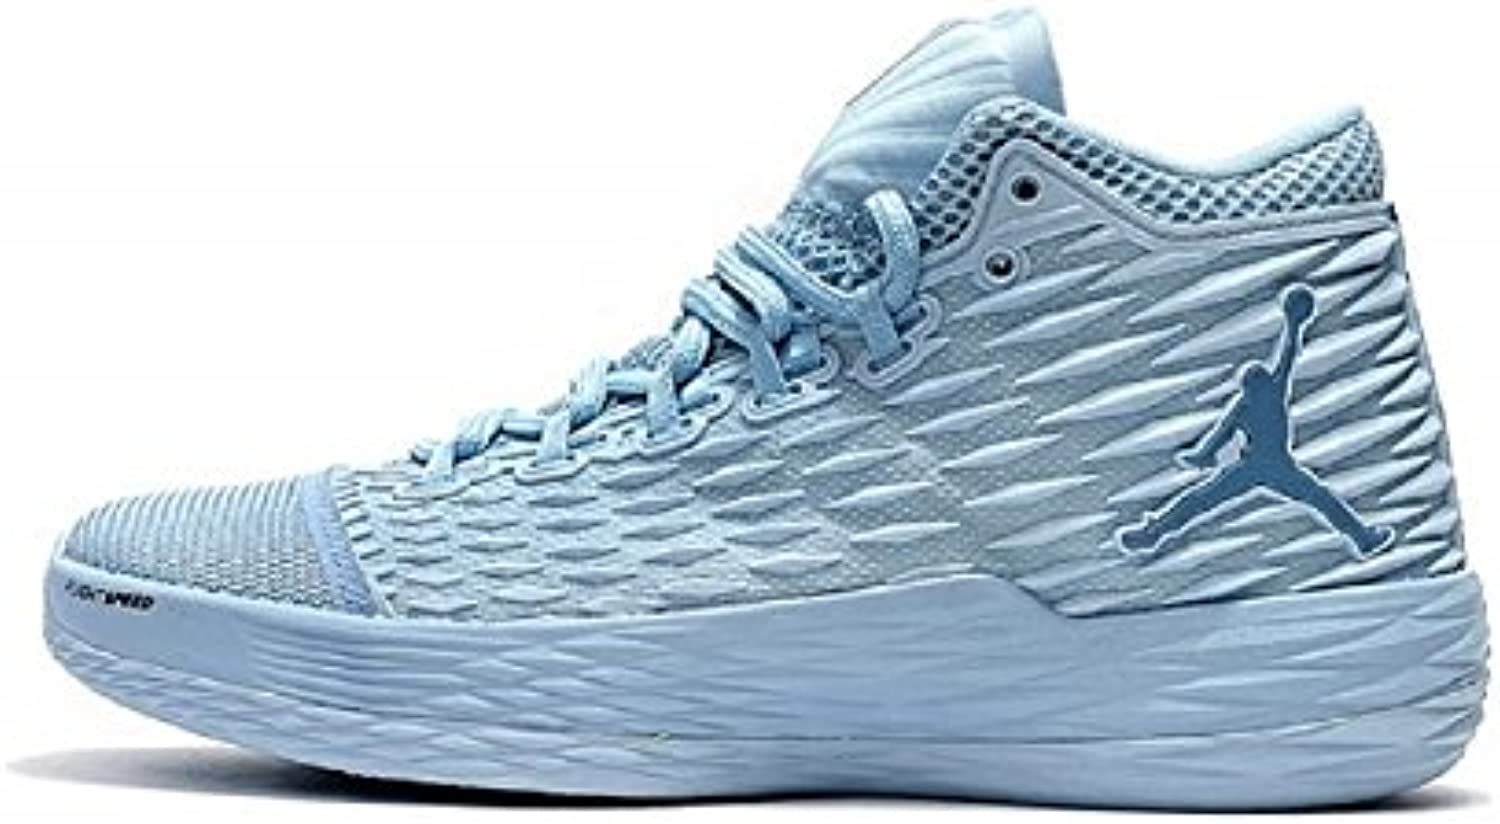 Jordan Melo M13 Energy Men's Basketball Shoes 917925 917925 Shoes 405 (10.5) B073NB4FGM Parent a8501b